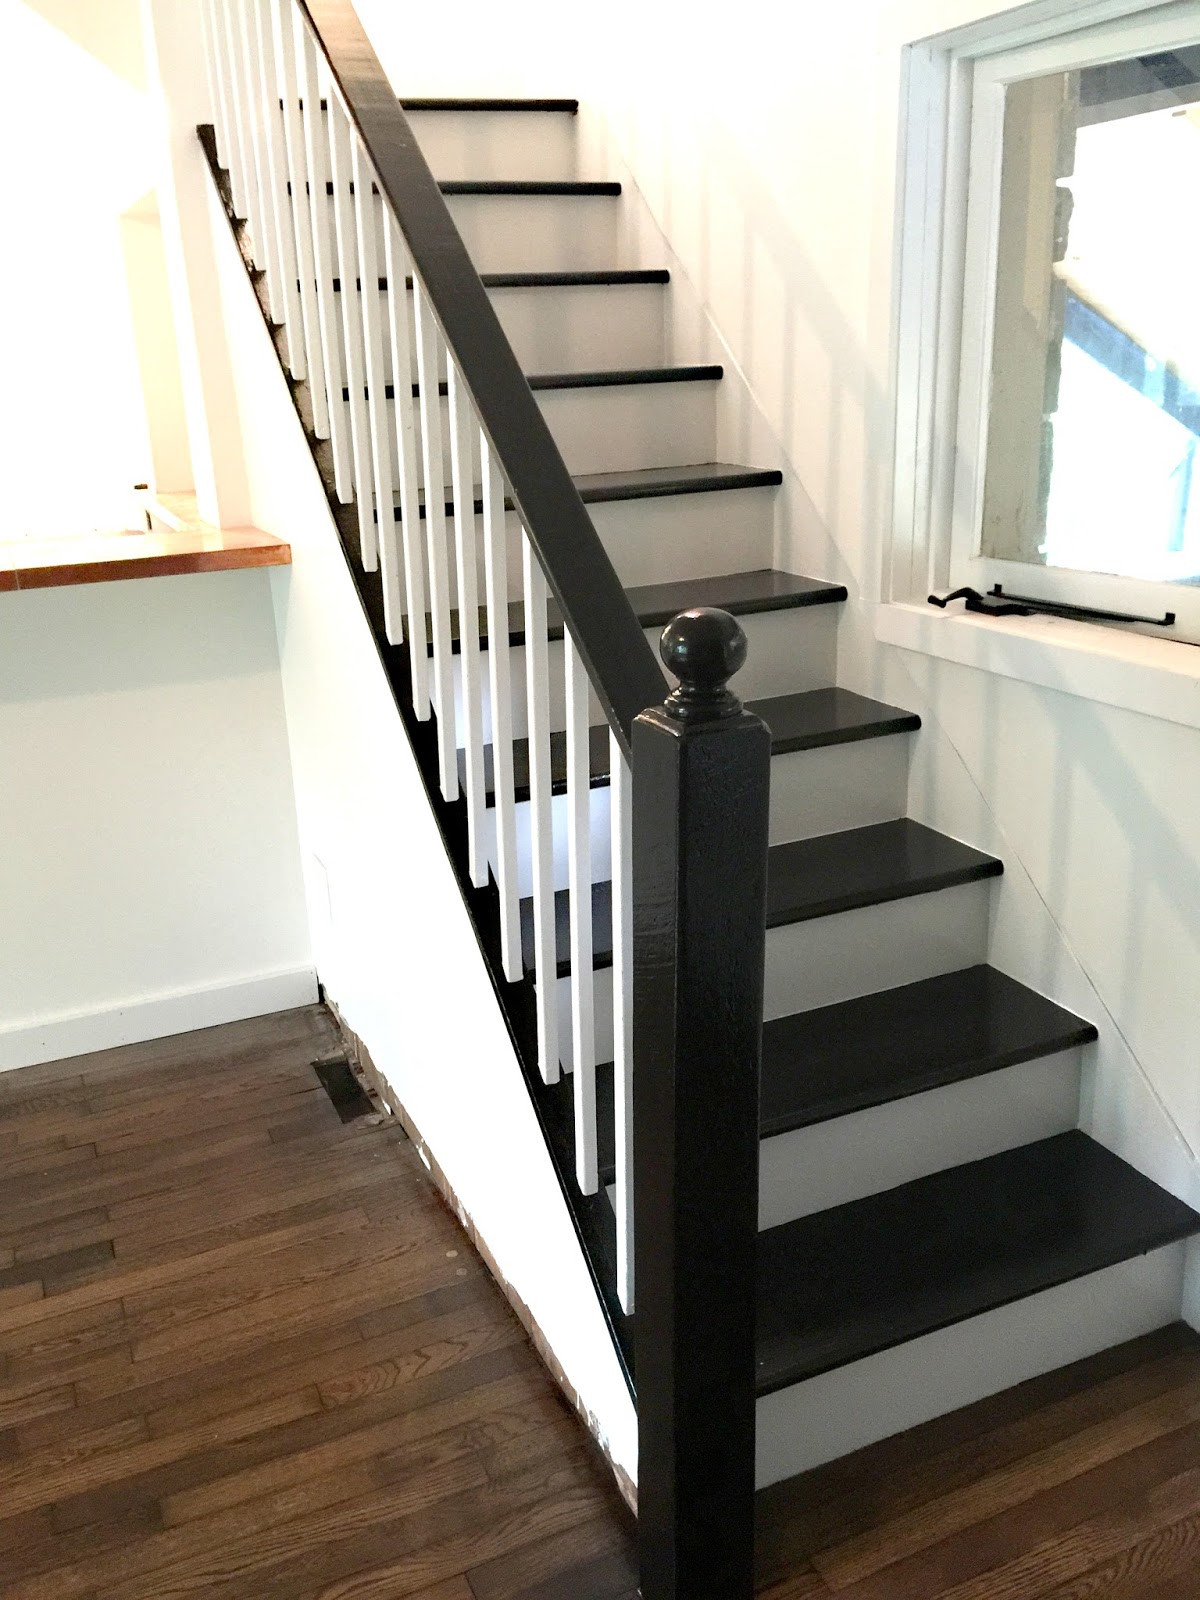 Best ideas about The Staircase 2 . Save or Pin FACCI DESIGNS How to Paint a Staircase Black & White Now.